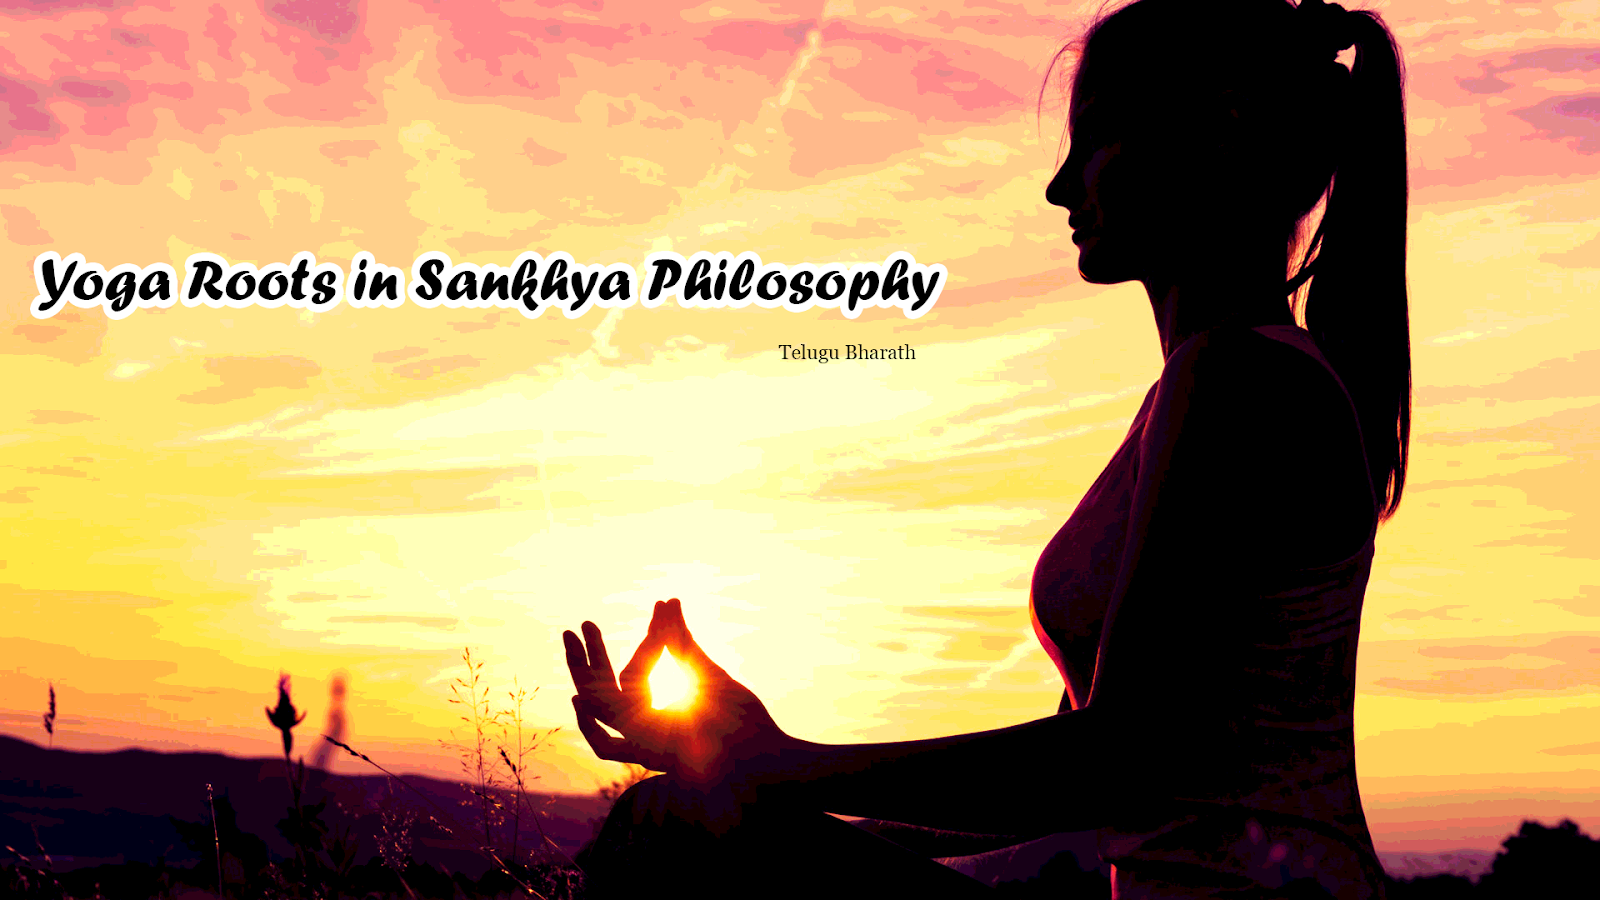 Yoga Roots in Sankhya Philosophy